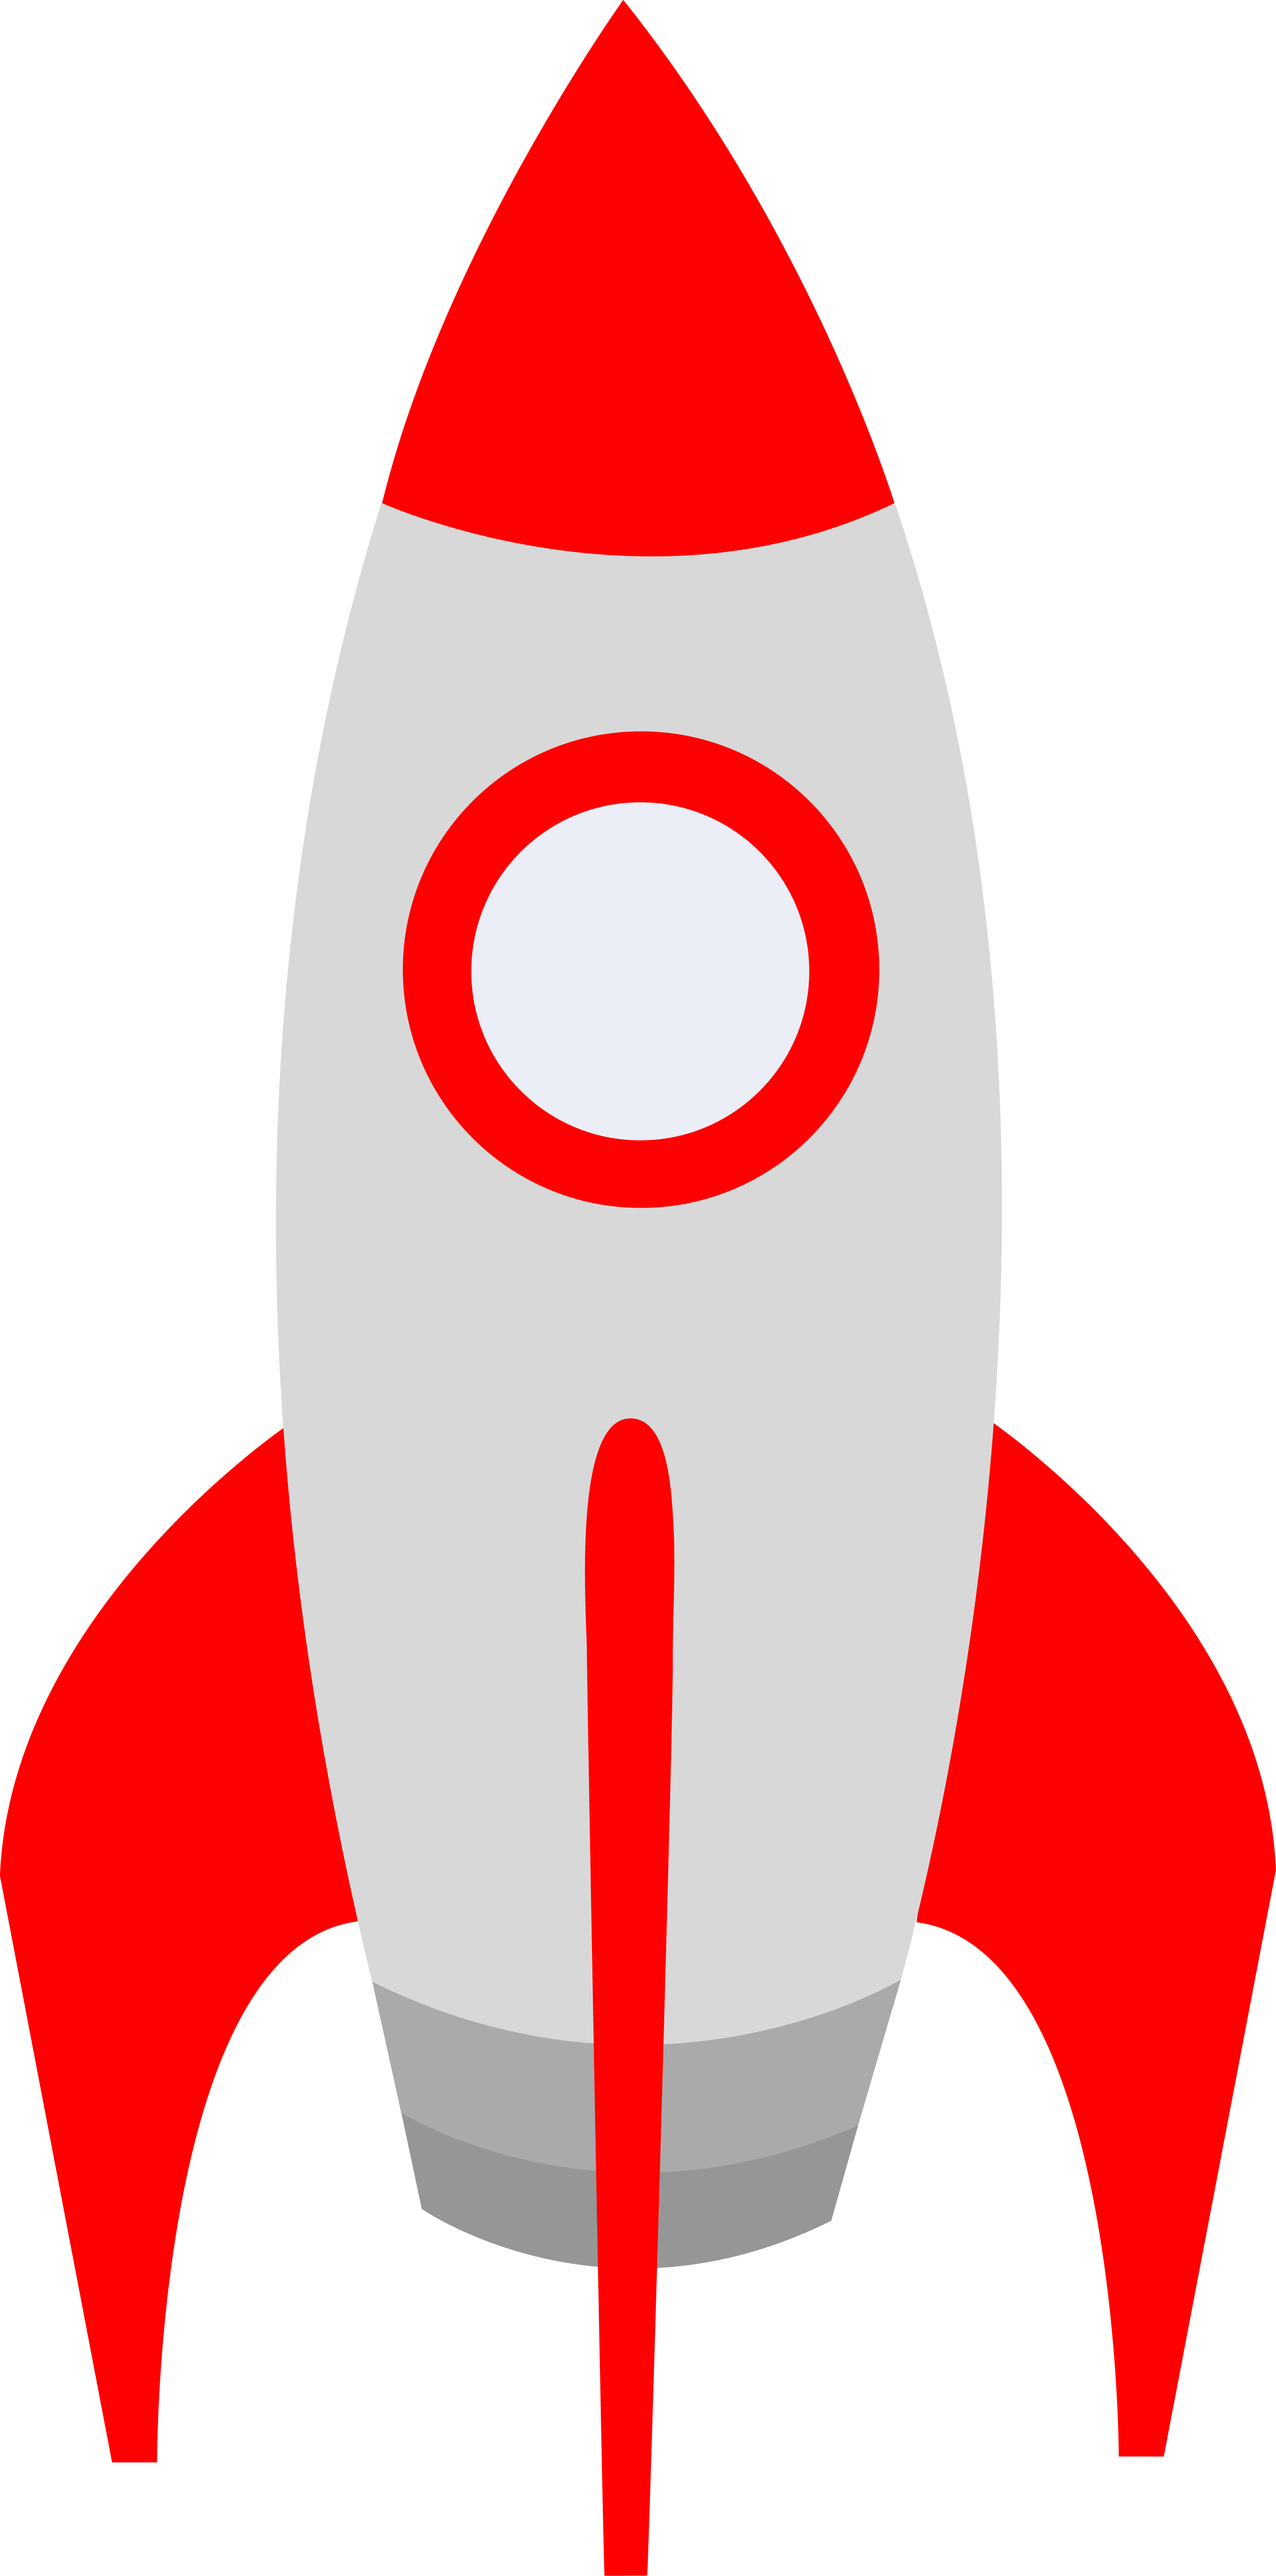 Rocket clipart #7, Download drawings